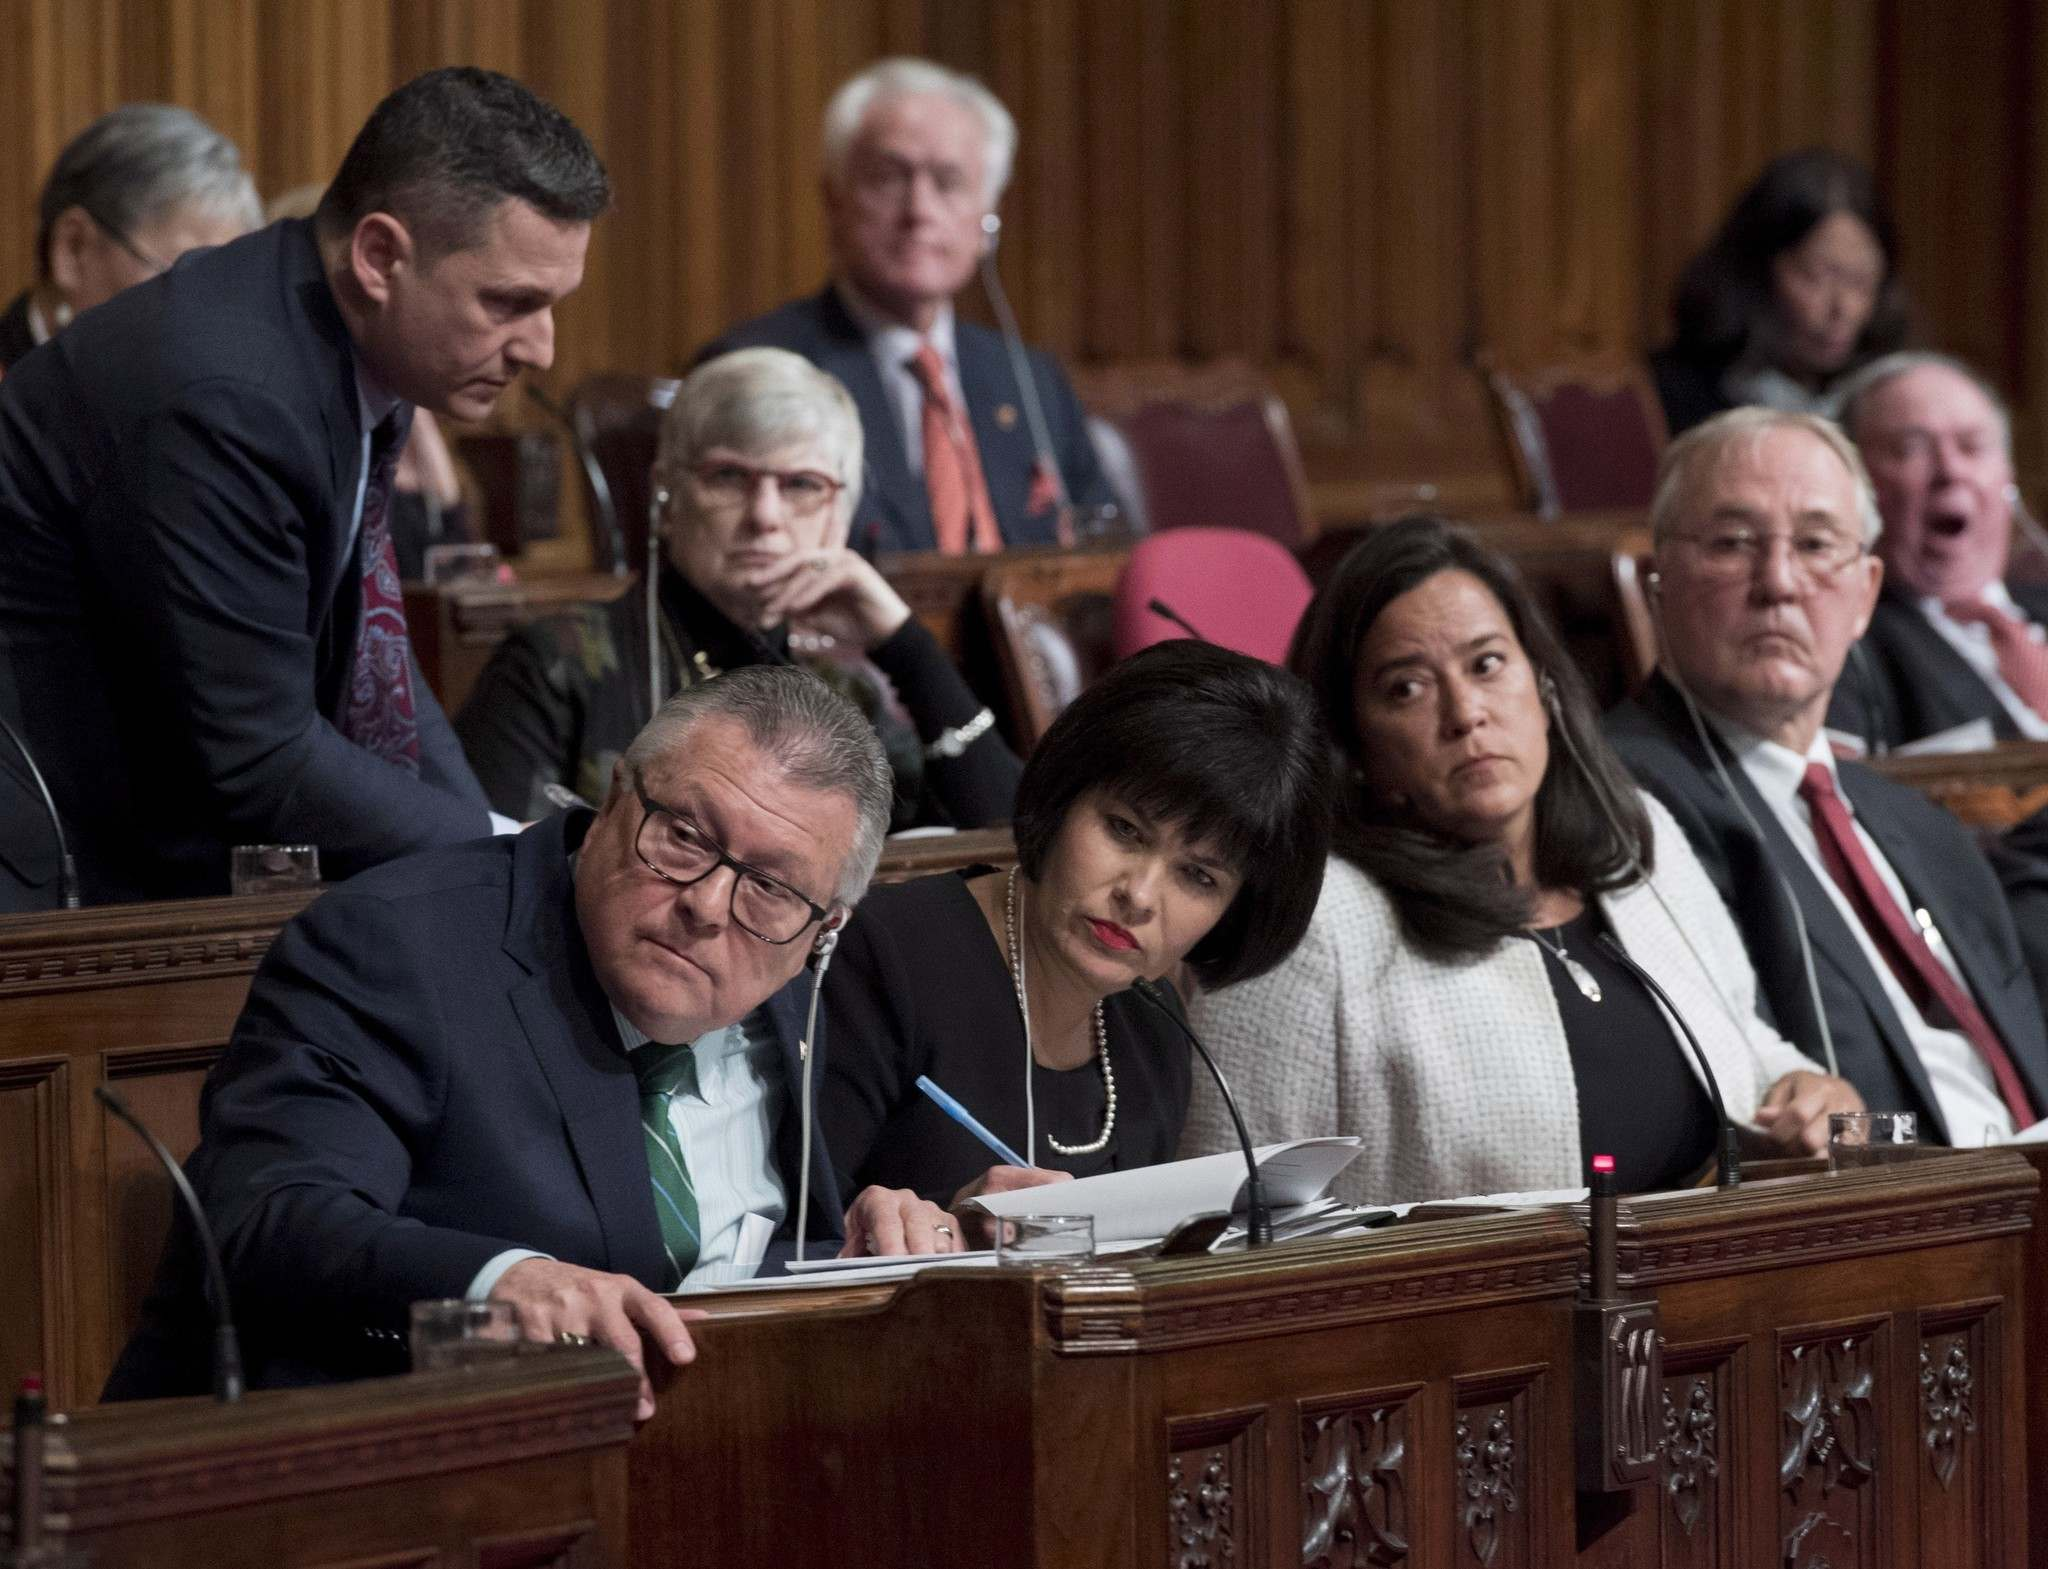 Minister of Public Safety and Emergency Preparedness Ralph Goodale, Minister of Health Ginette Petitpas Taylor, Minister of Justice and Attorney General of Canada Jody Wilson-Raybould and Bill Blair, M.P., Parliamentary Secretary to the Minister of Justice and the Attorney General of Canada and the Minister of Health, listen to a question during a televised Senate hearing on Bill C-45 on Tuesday, Feb. 6, 2018.